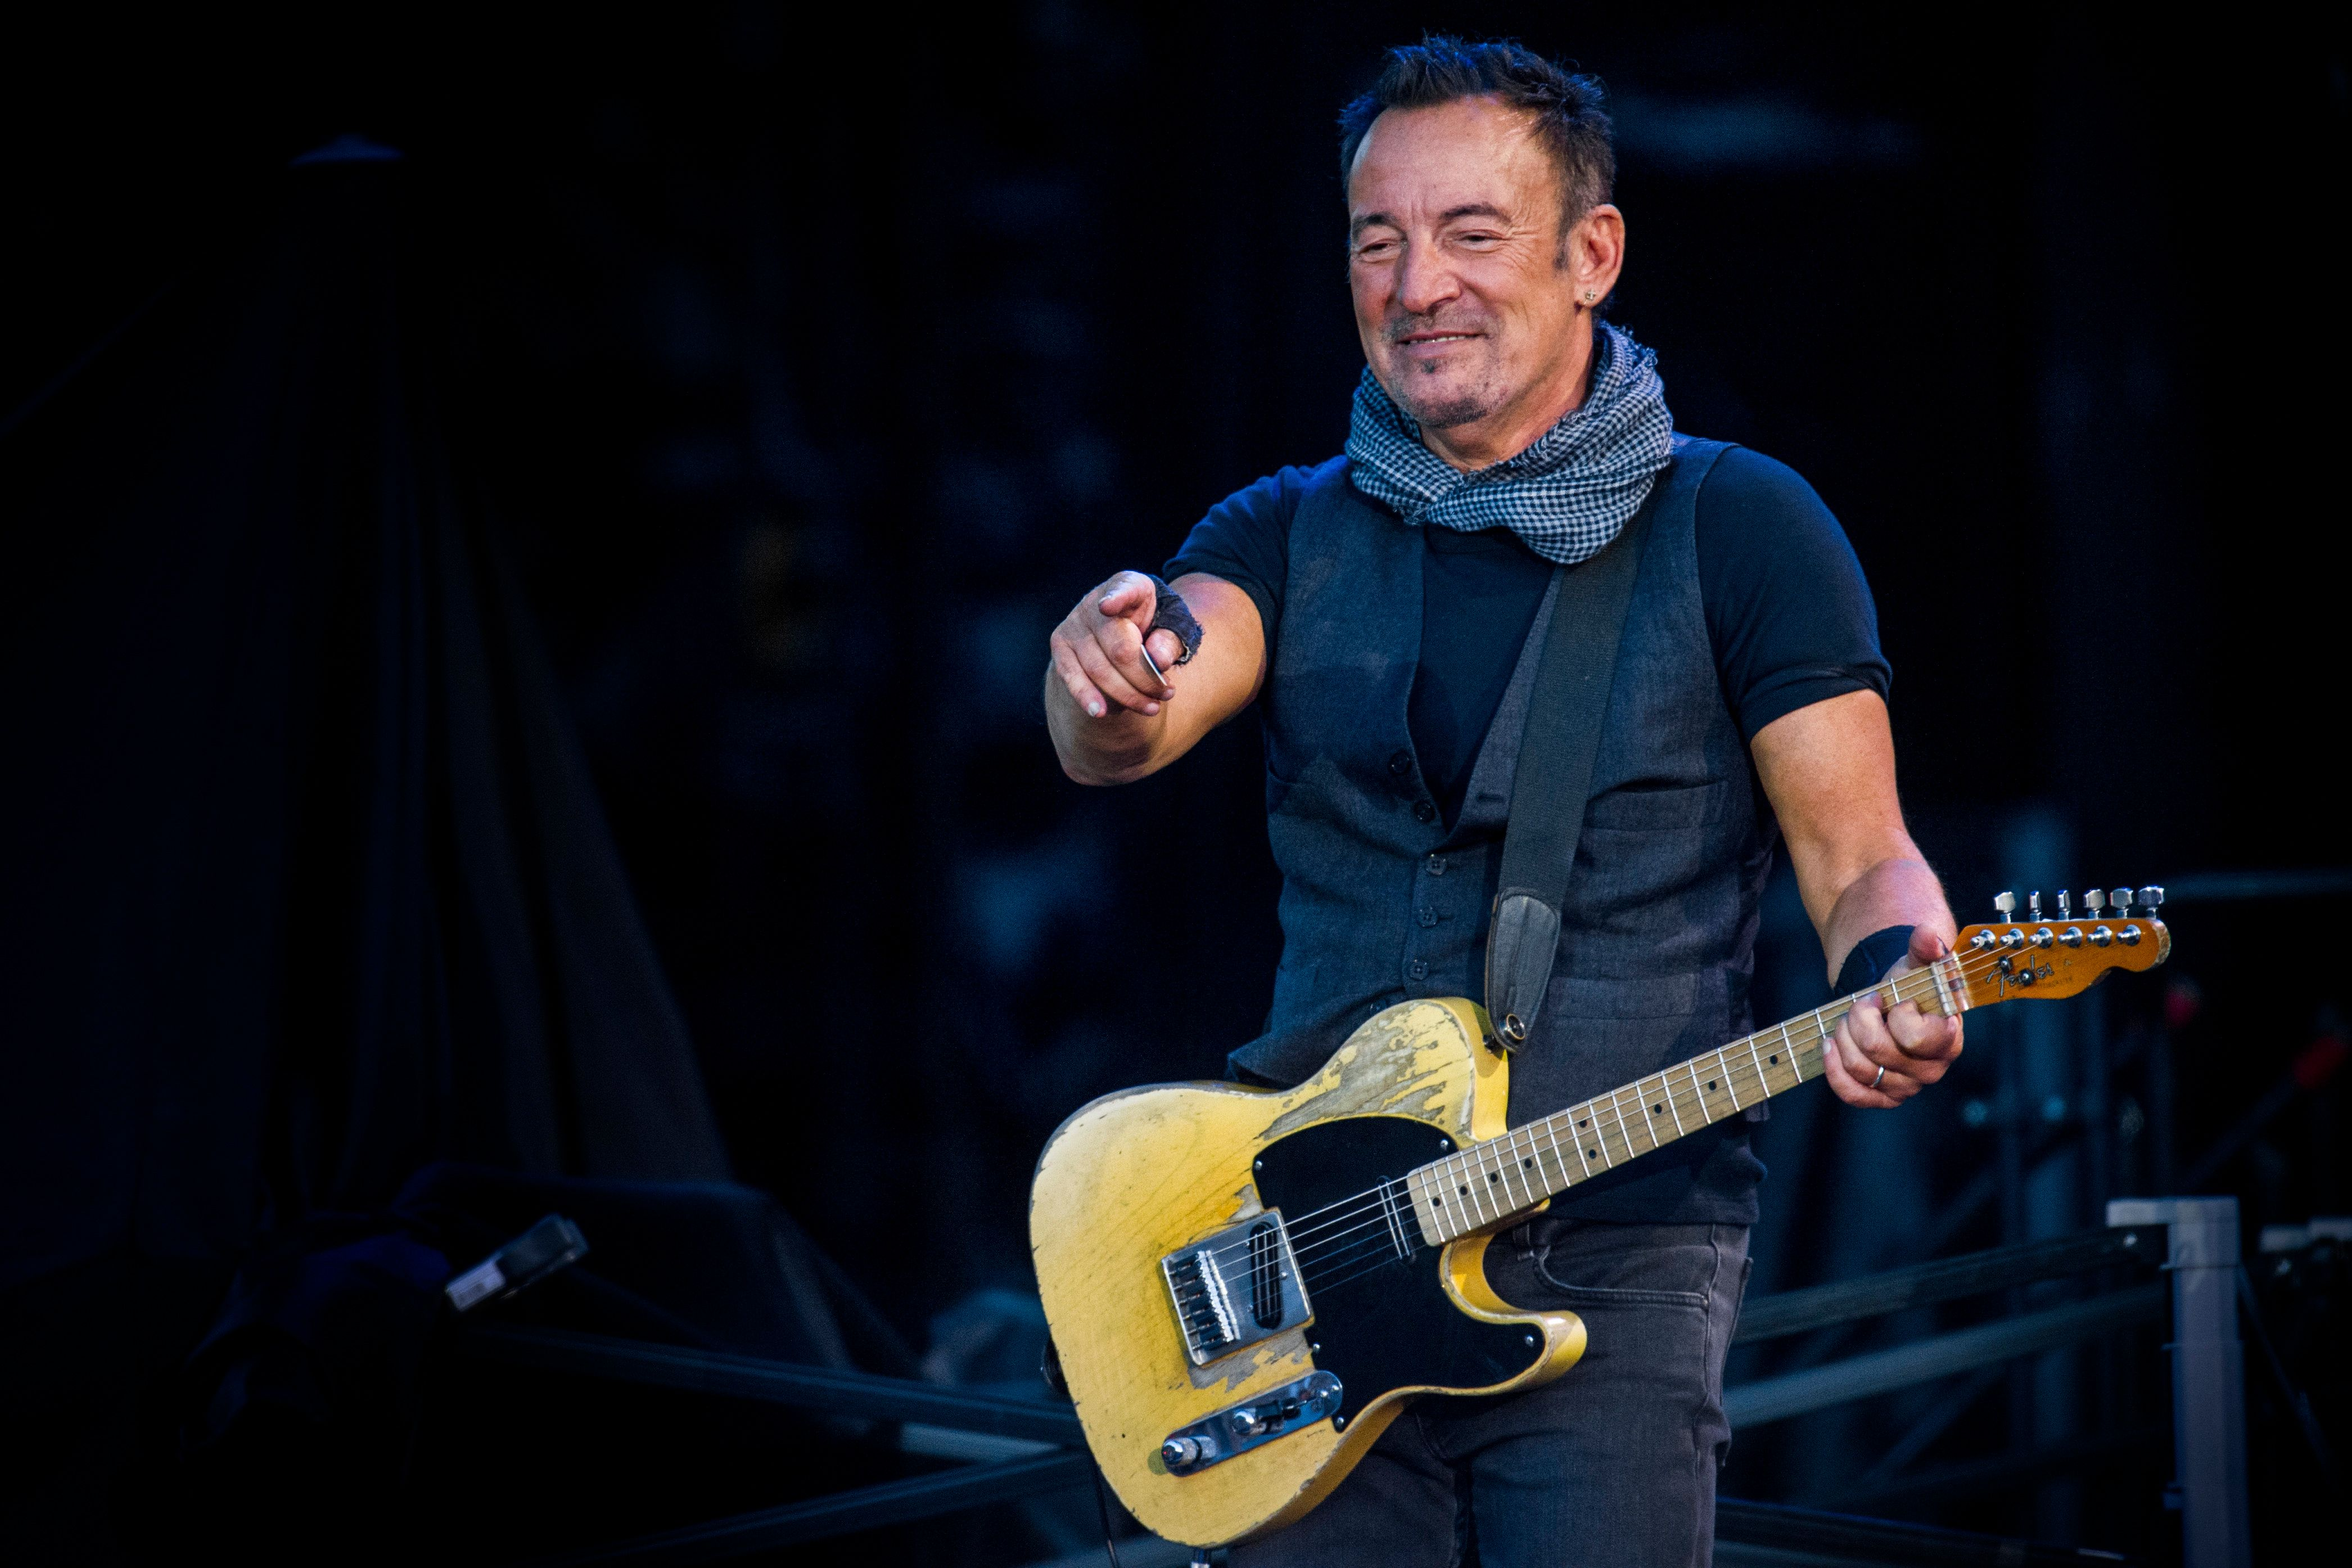 Rock icon Bruce Springsteen explains how depression affected his